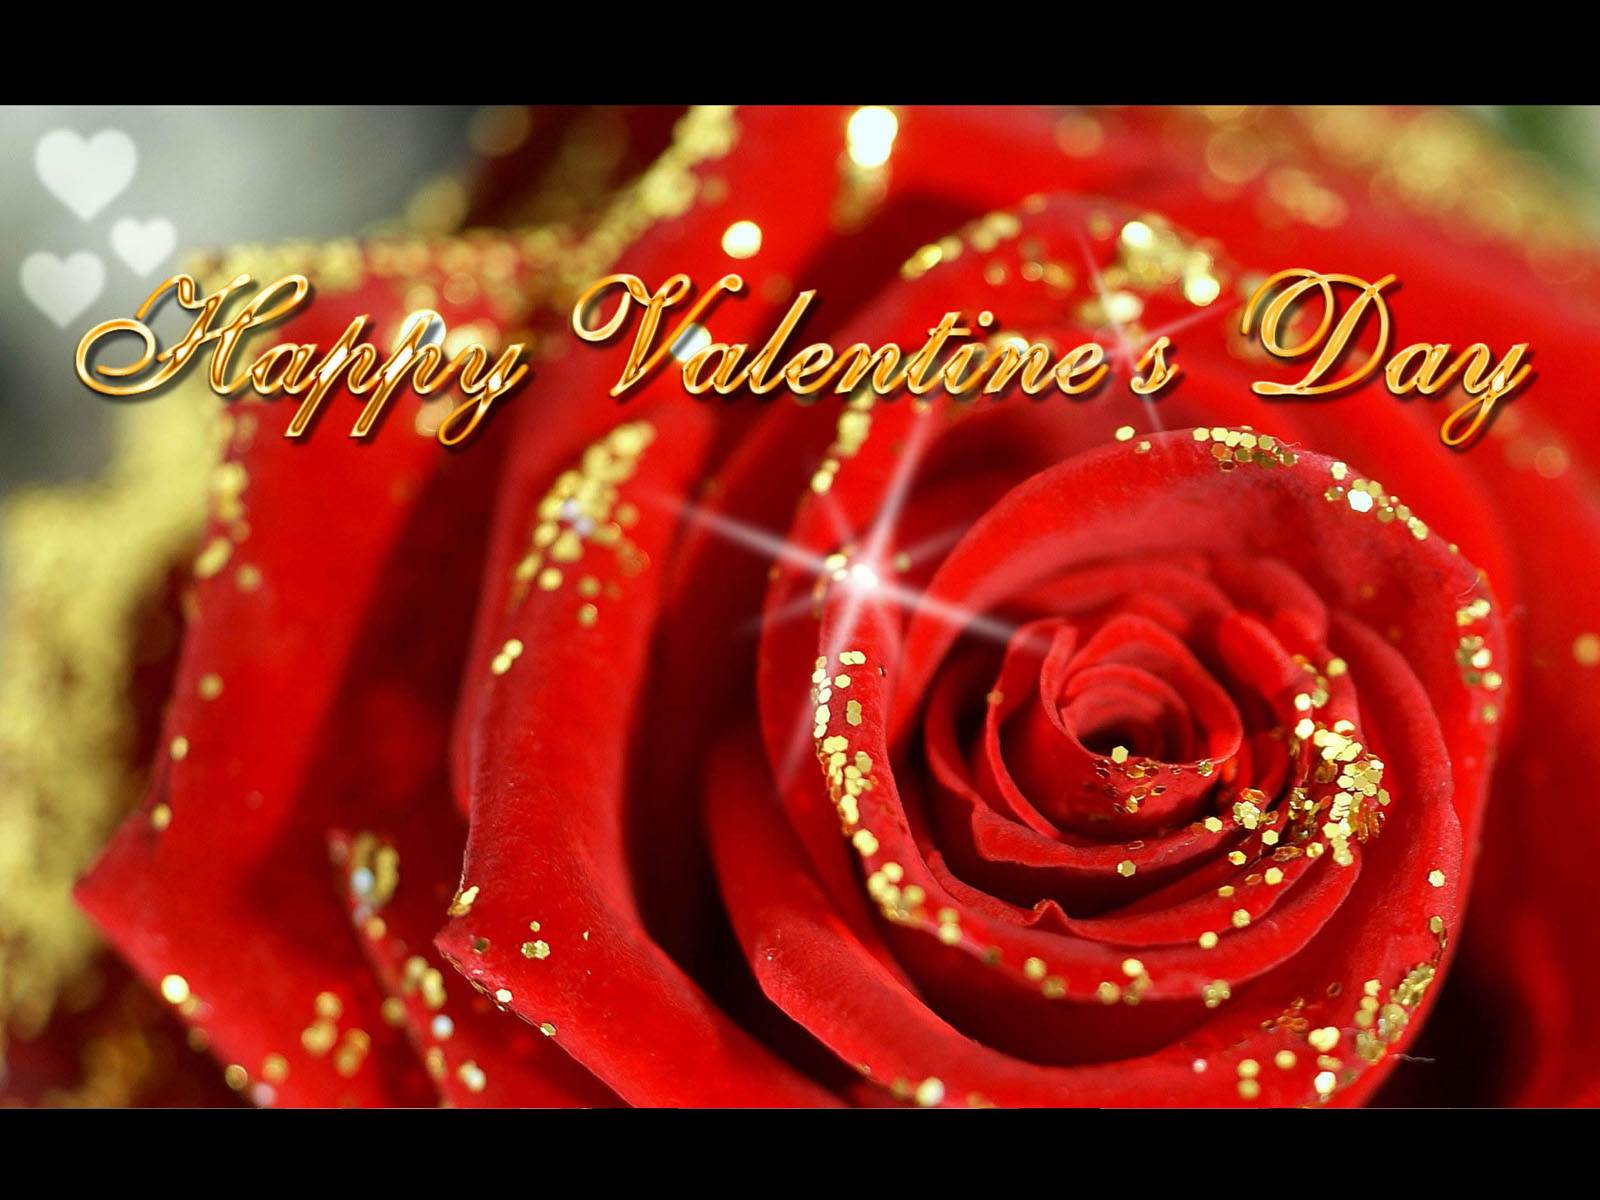 Valentine\s Day Roses Full Screen Awesome Wallpaper Wallpaper 1600x1200